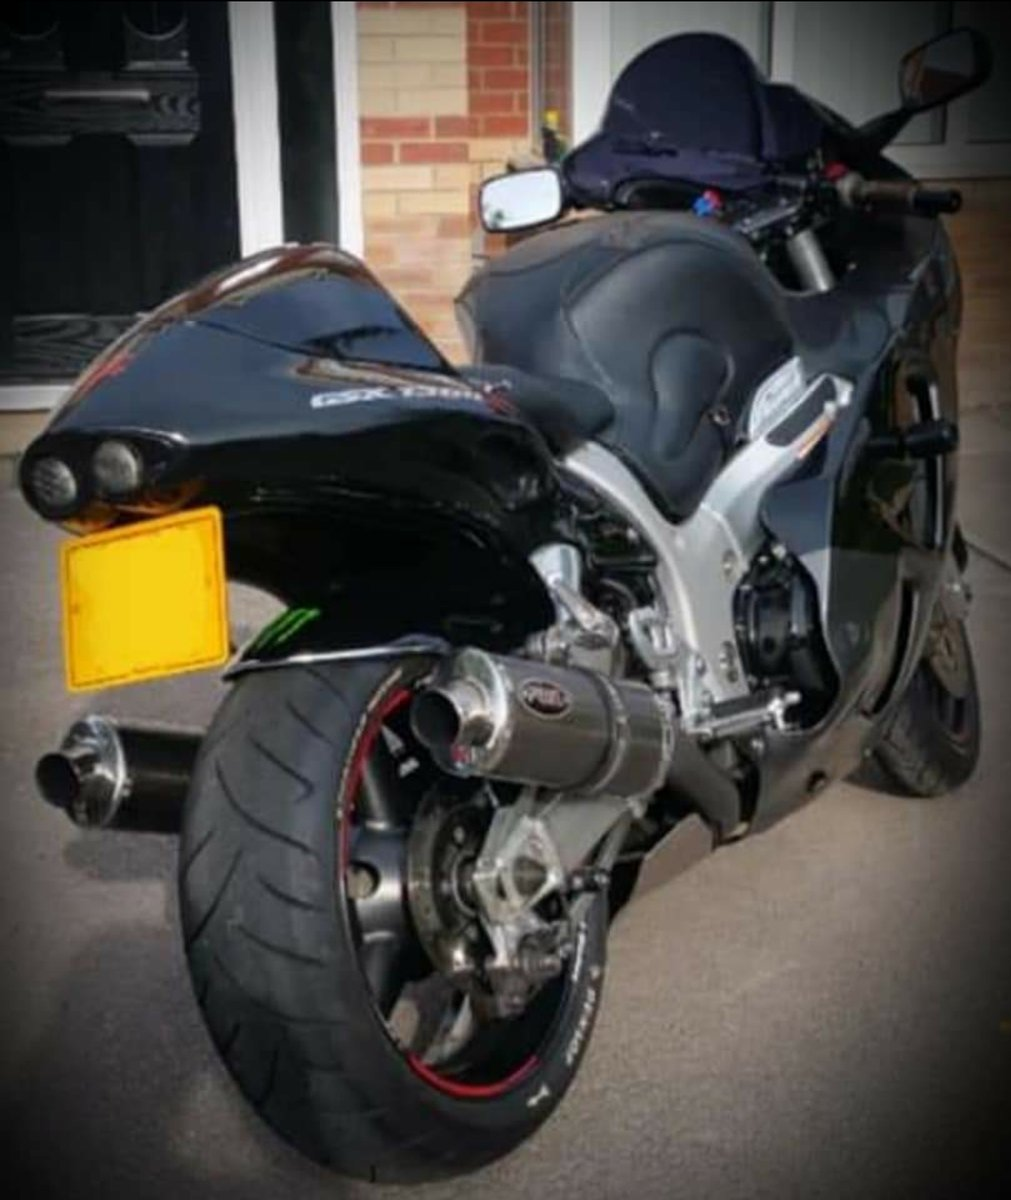 2000 Hayabusa RY 1st Generation unrestricted model For Sale (picture 3 of 3)